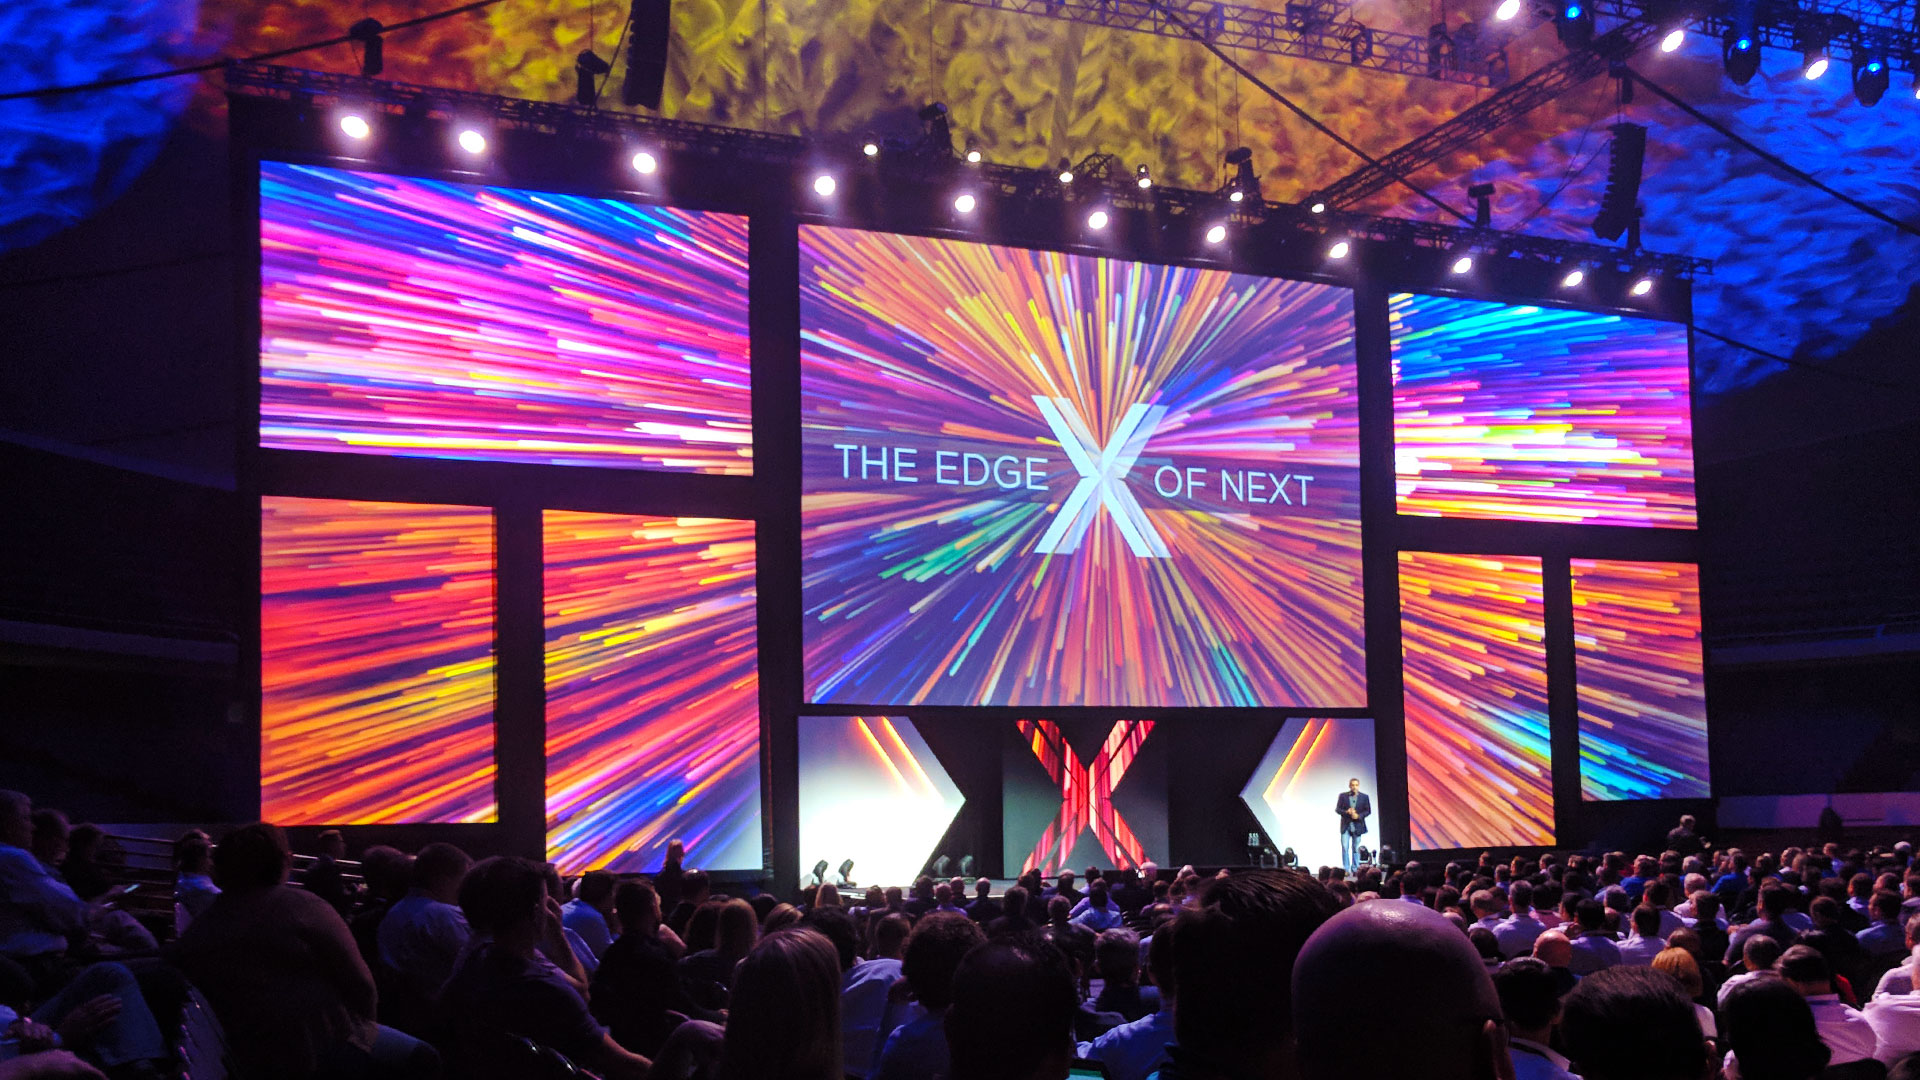 Massive Projection Mapping In A Convention Center Xlab Realtime